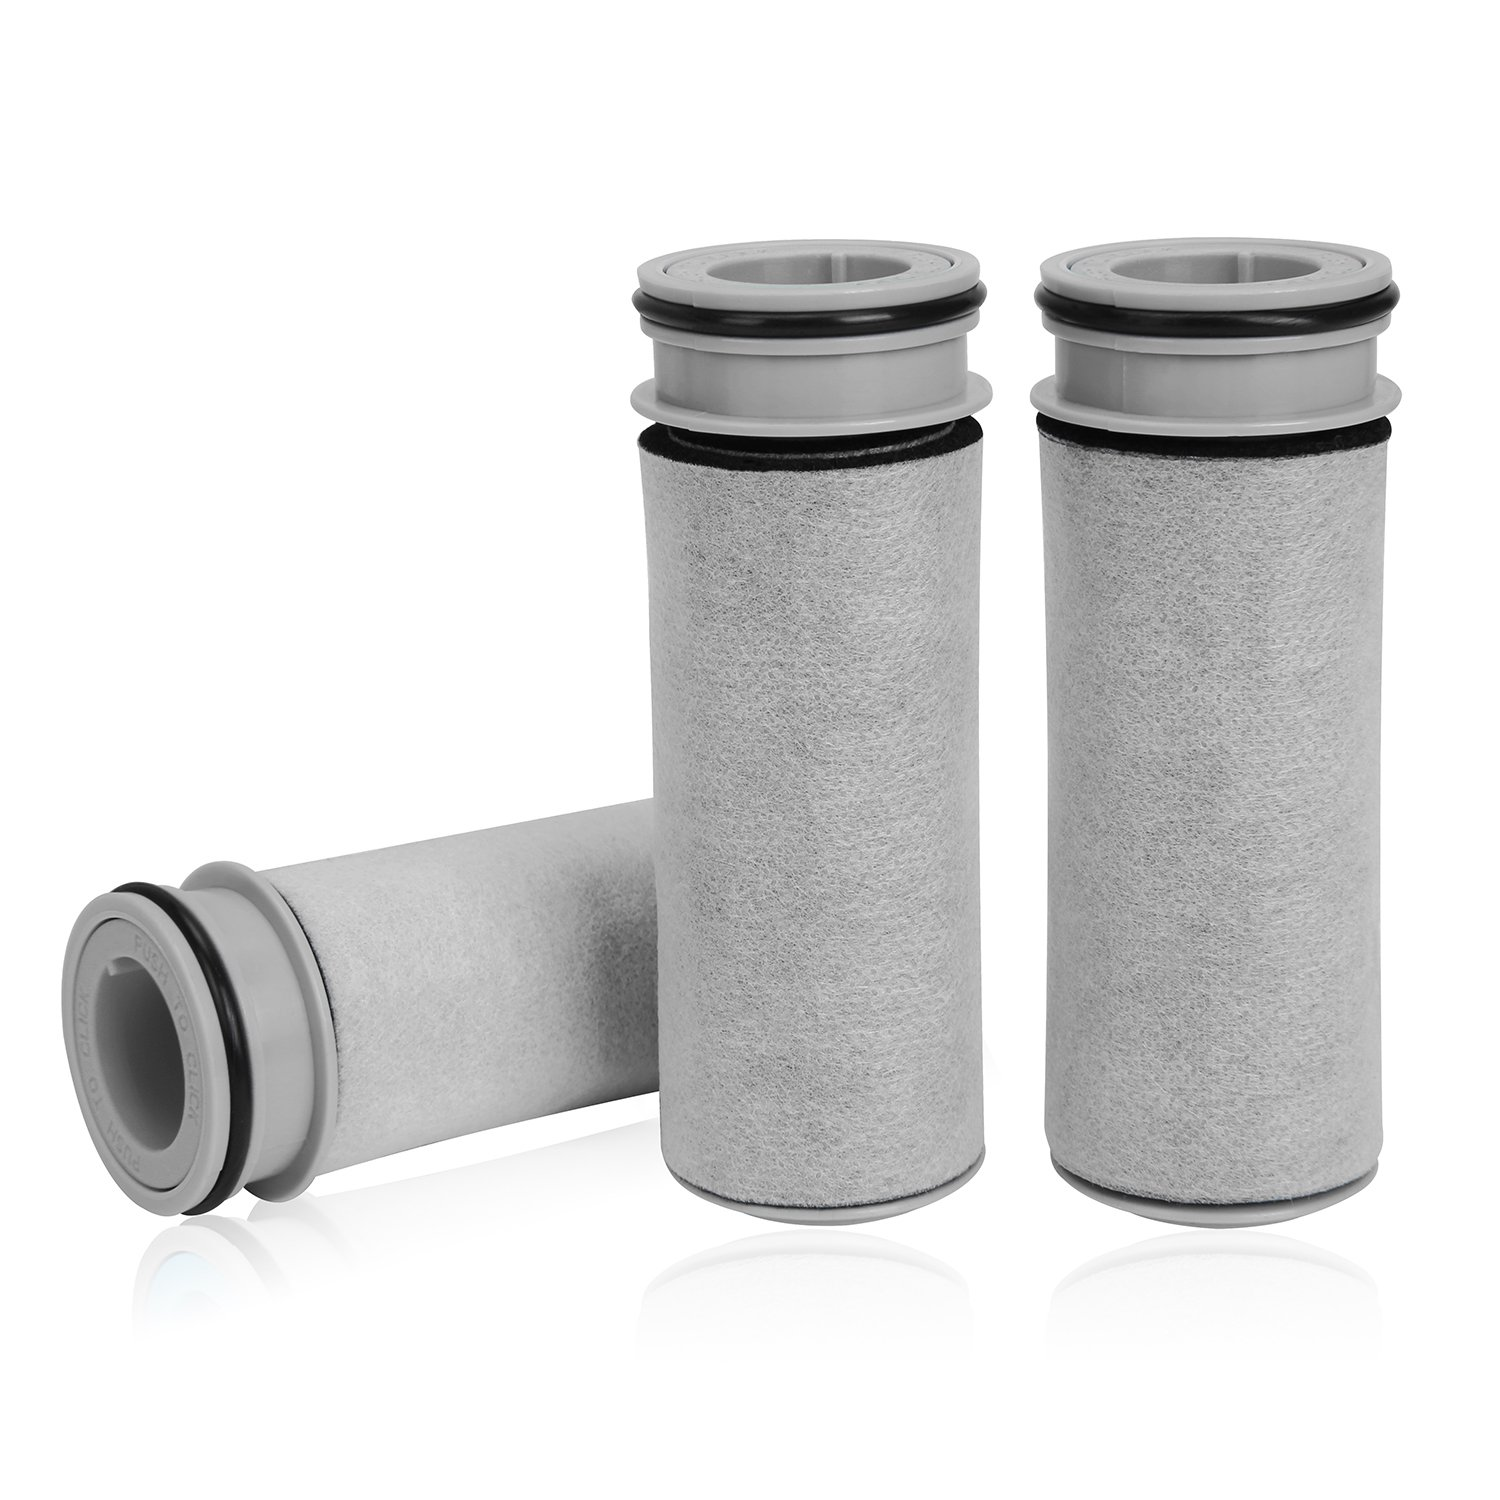 Pack of 3 Brita Standard Replacement Water Filter for Pitchers and Dispensers